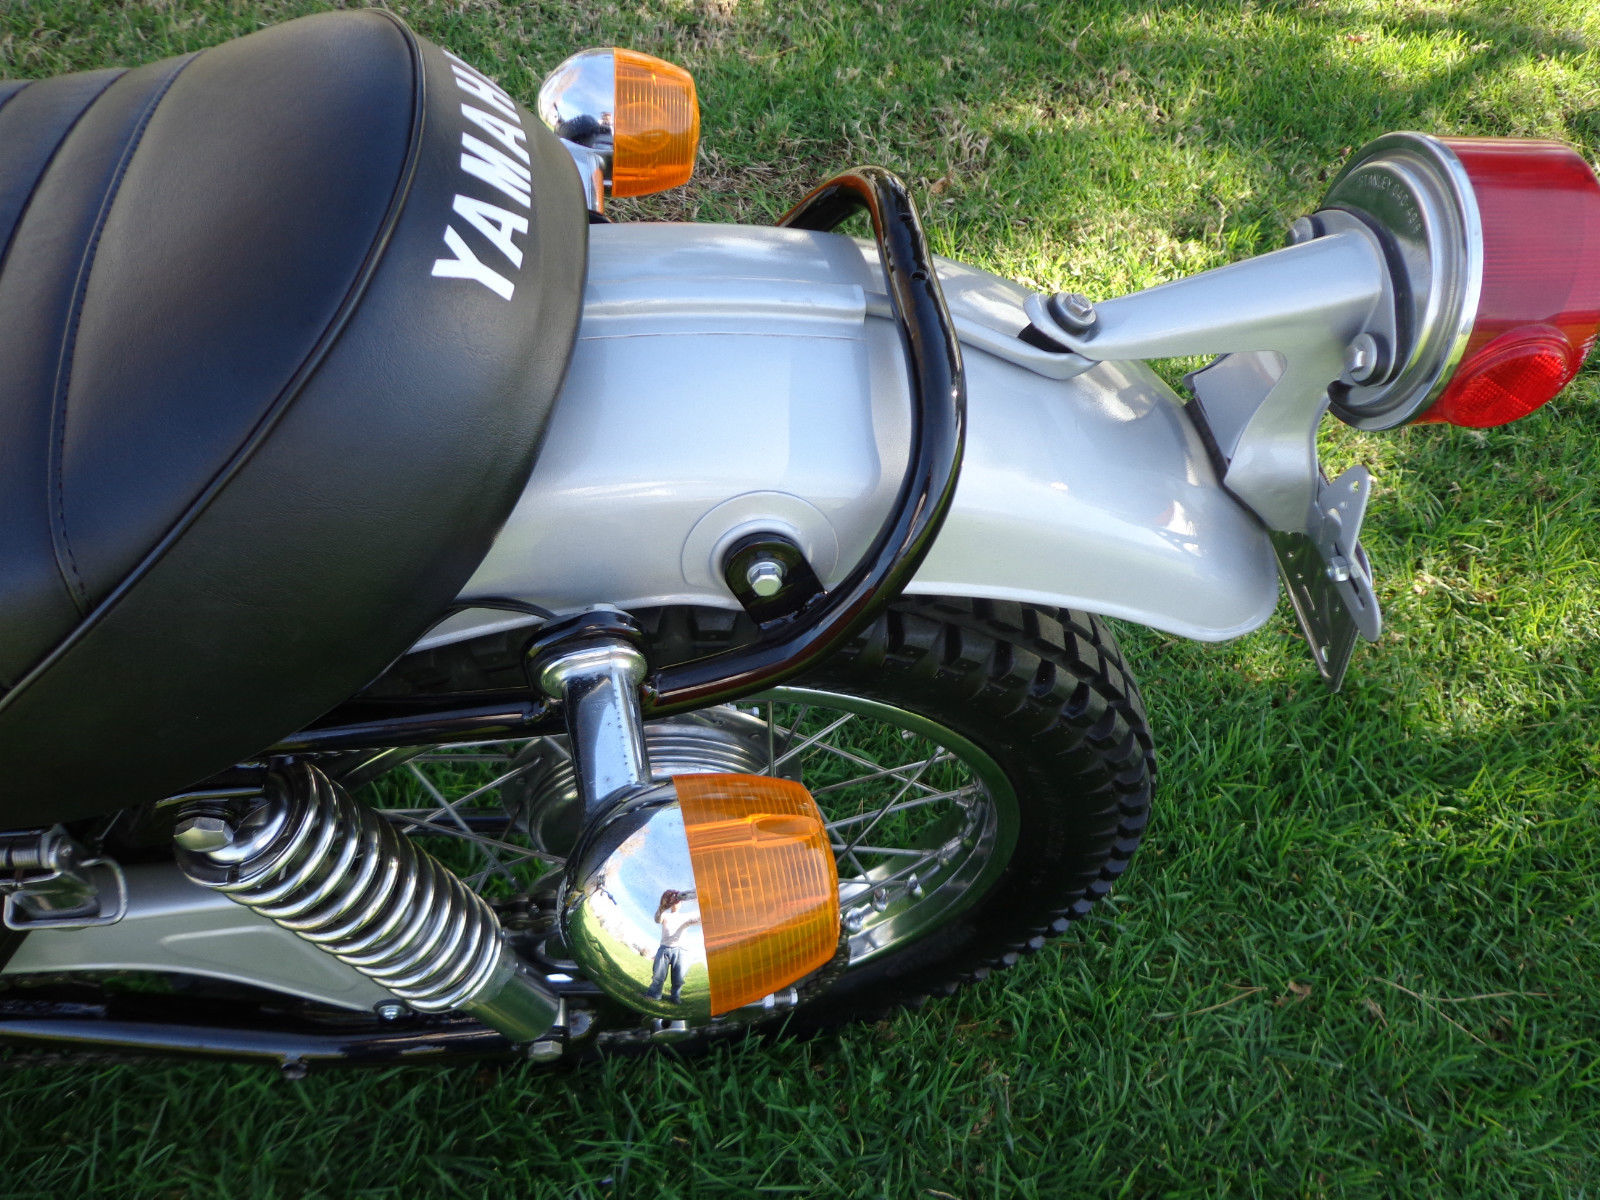 Yamaha DT250 - 1972 - Rear Fender, Mudguard, Light Bracket and Seat.